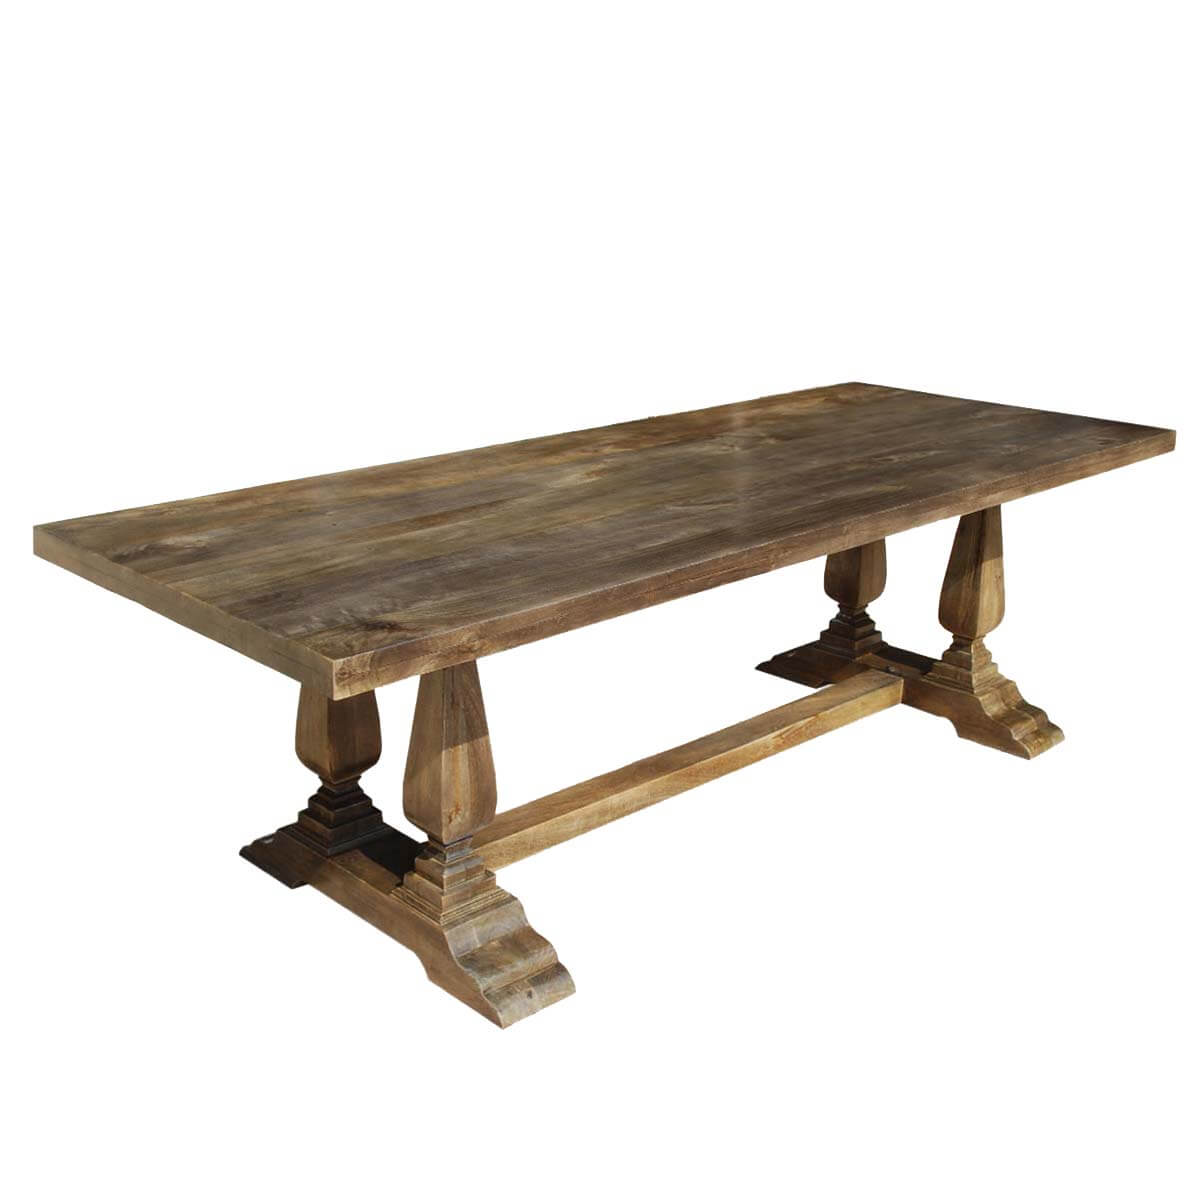 pelham rustic 98 solid wood trestle pedestal dining table. Black Bedroom Furniture Sets. Home Design Ideas